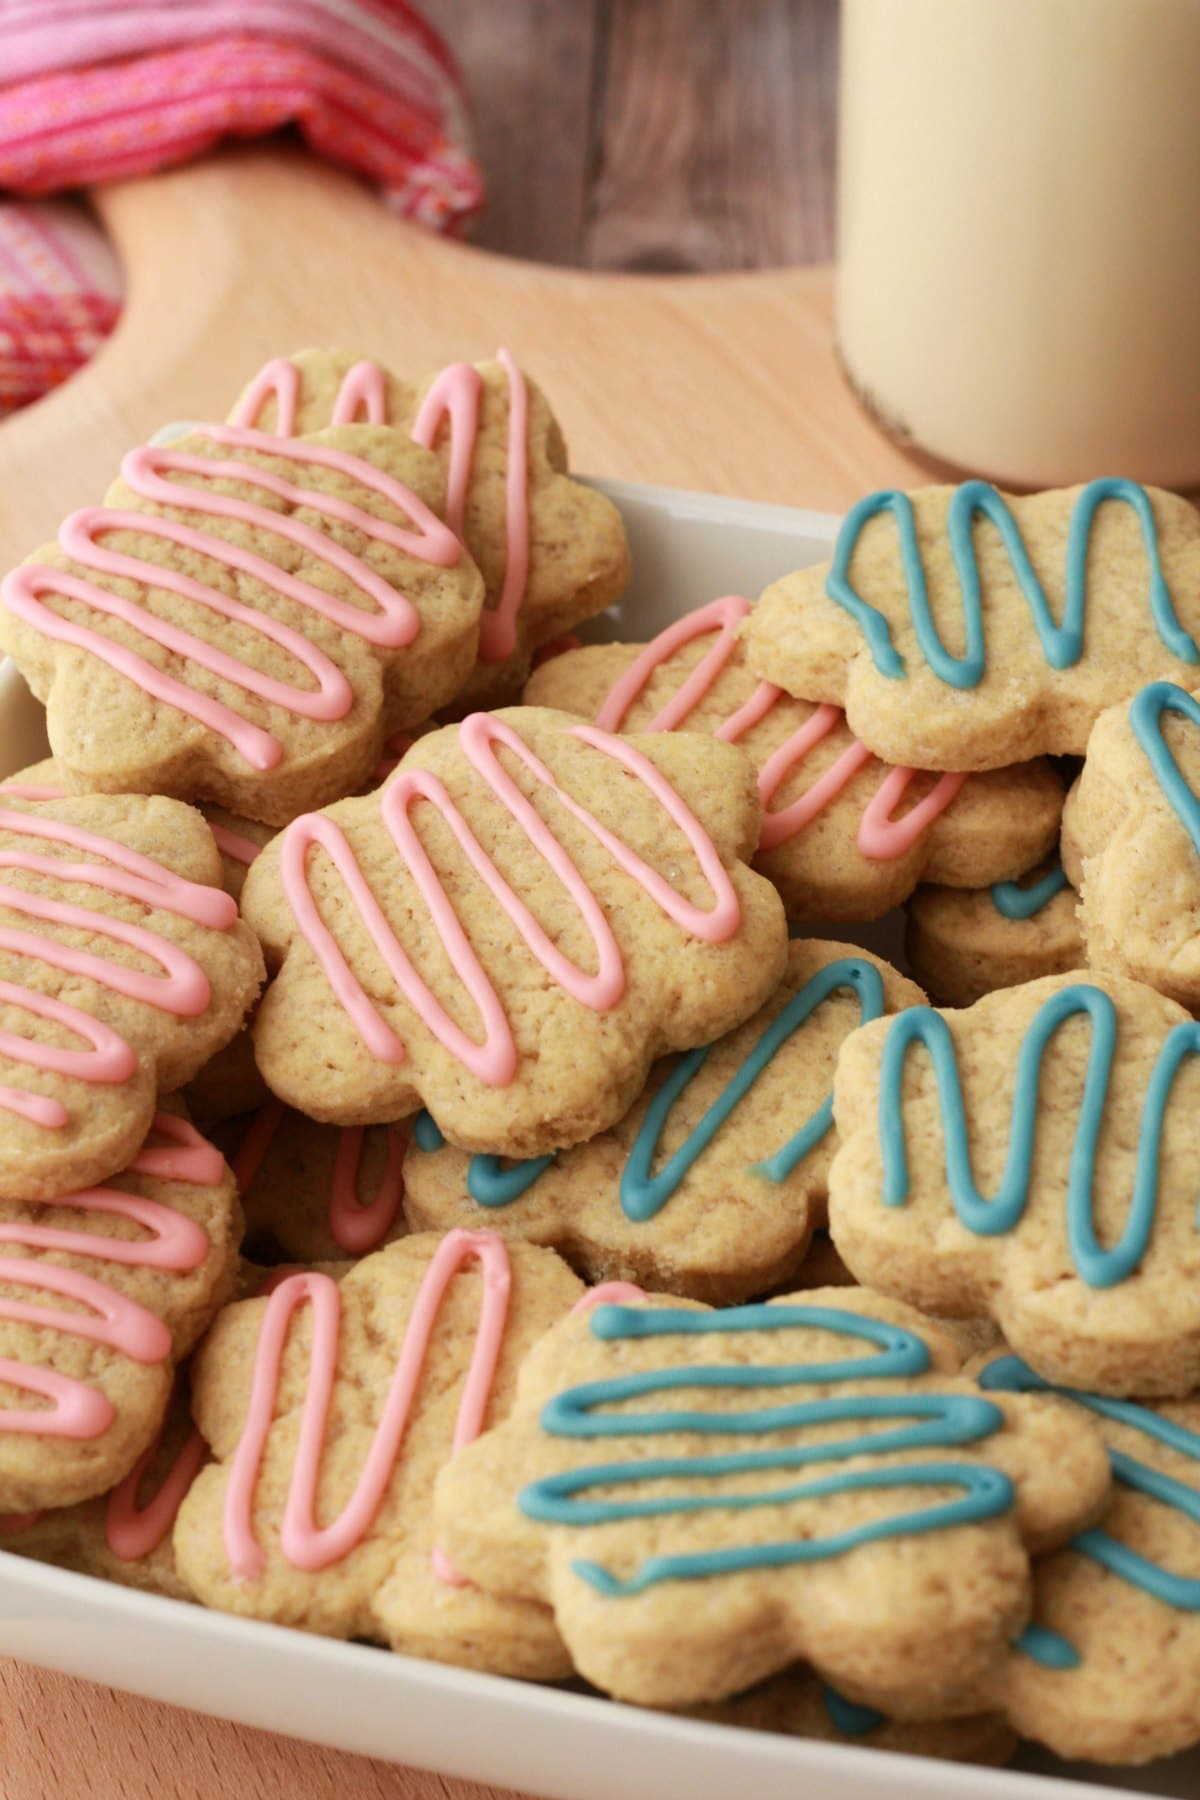 Super easy vegan sugar cookies. Perfect for any occasion! #vegan #lovingitvegan #dessert #cookies #sugarcookies